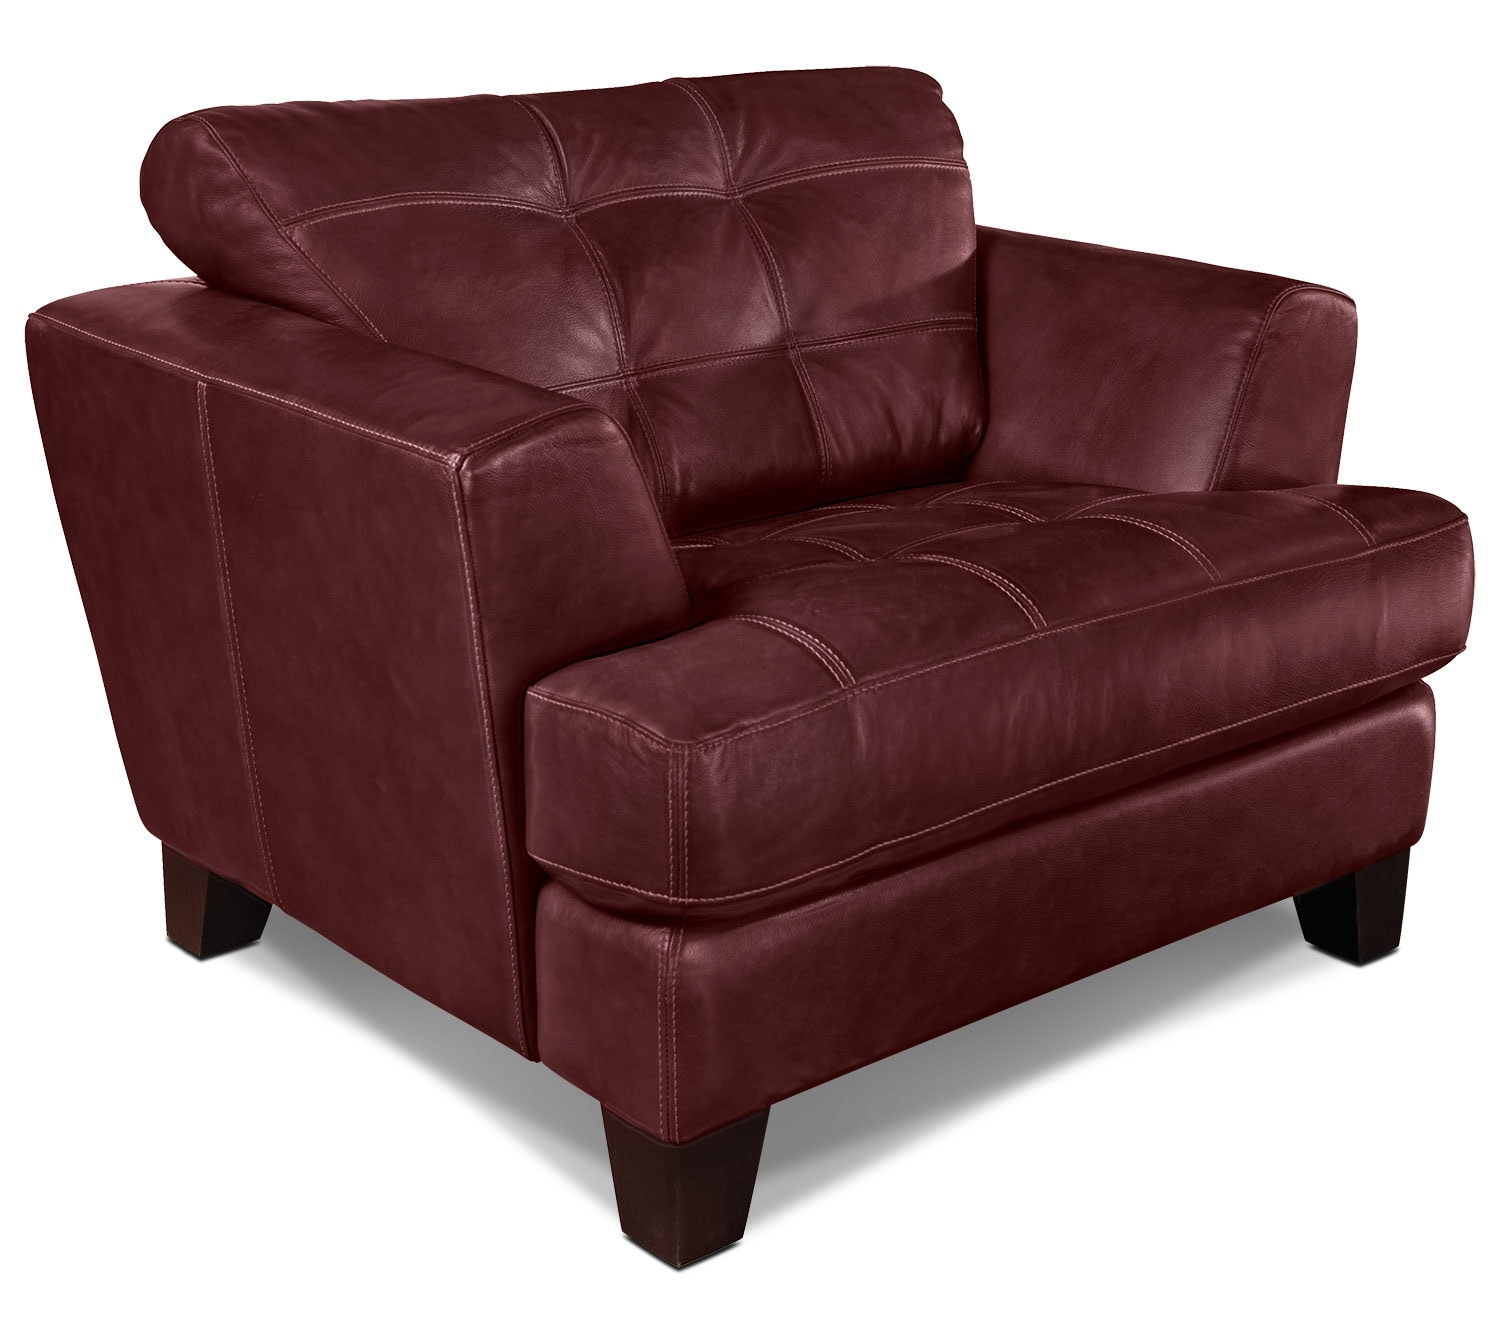 Living Room Furniture - Avenue Genuine Leather Chair - Red